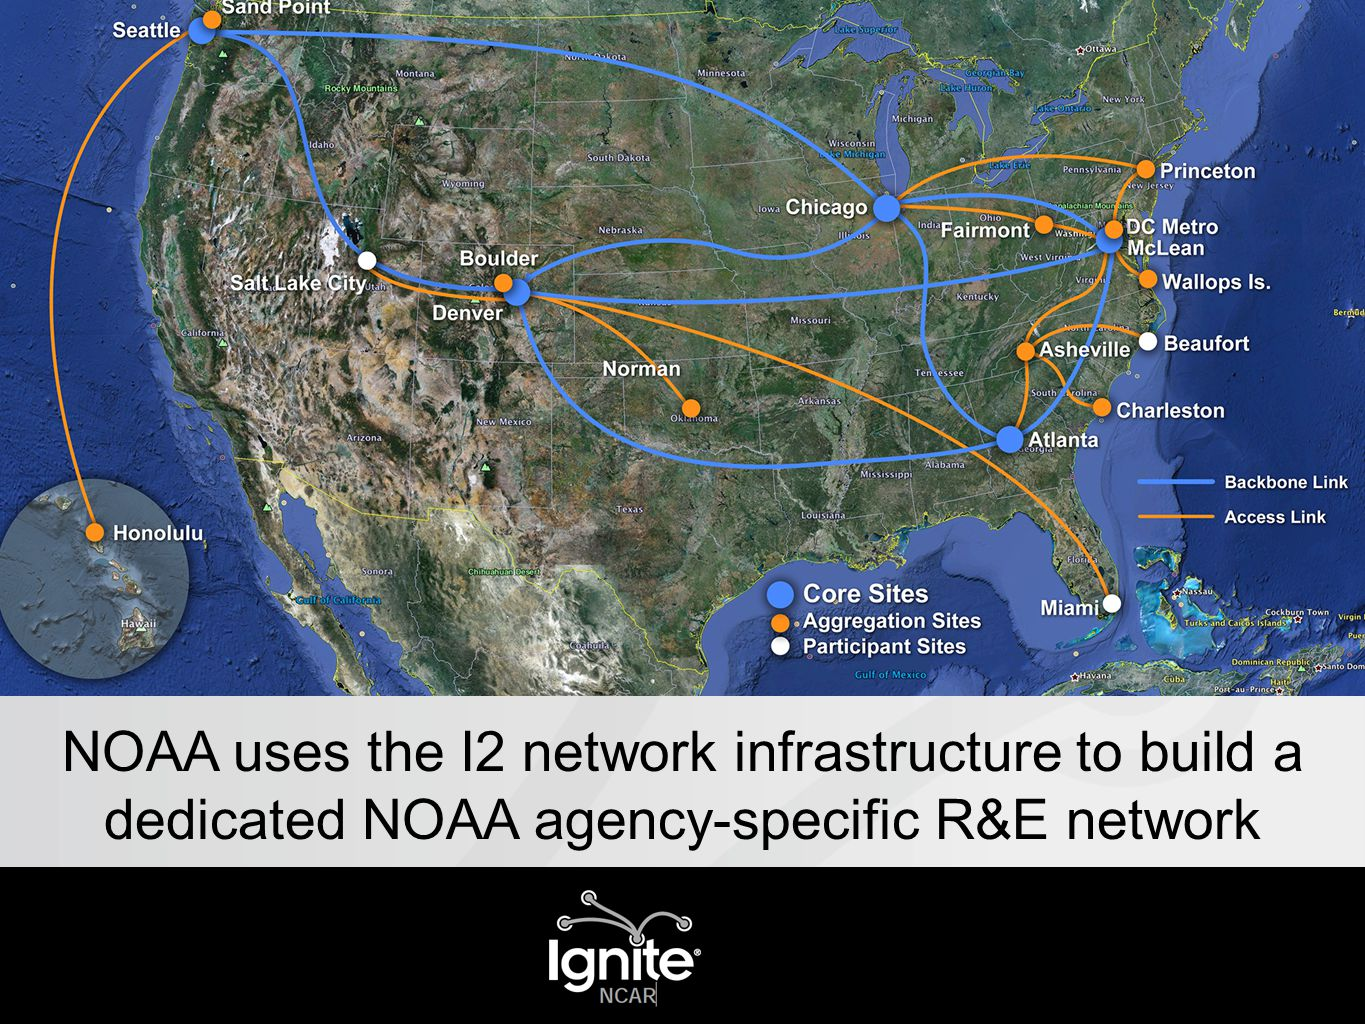 NOAA uses the I2 network infrastructure to build a dedicated NOAA agency-specific R&E network